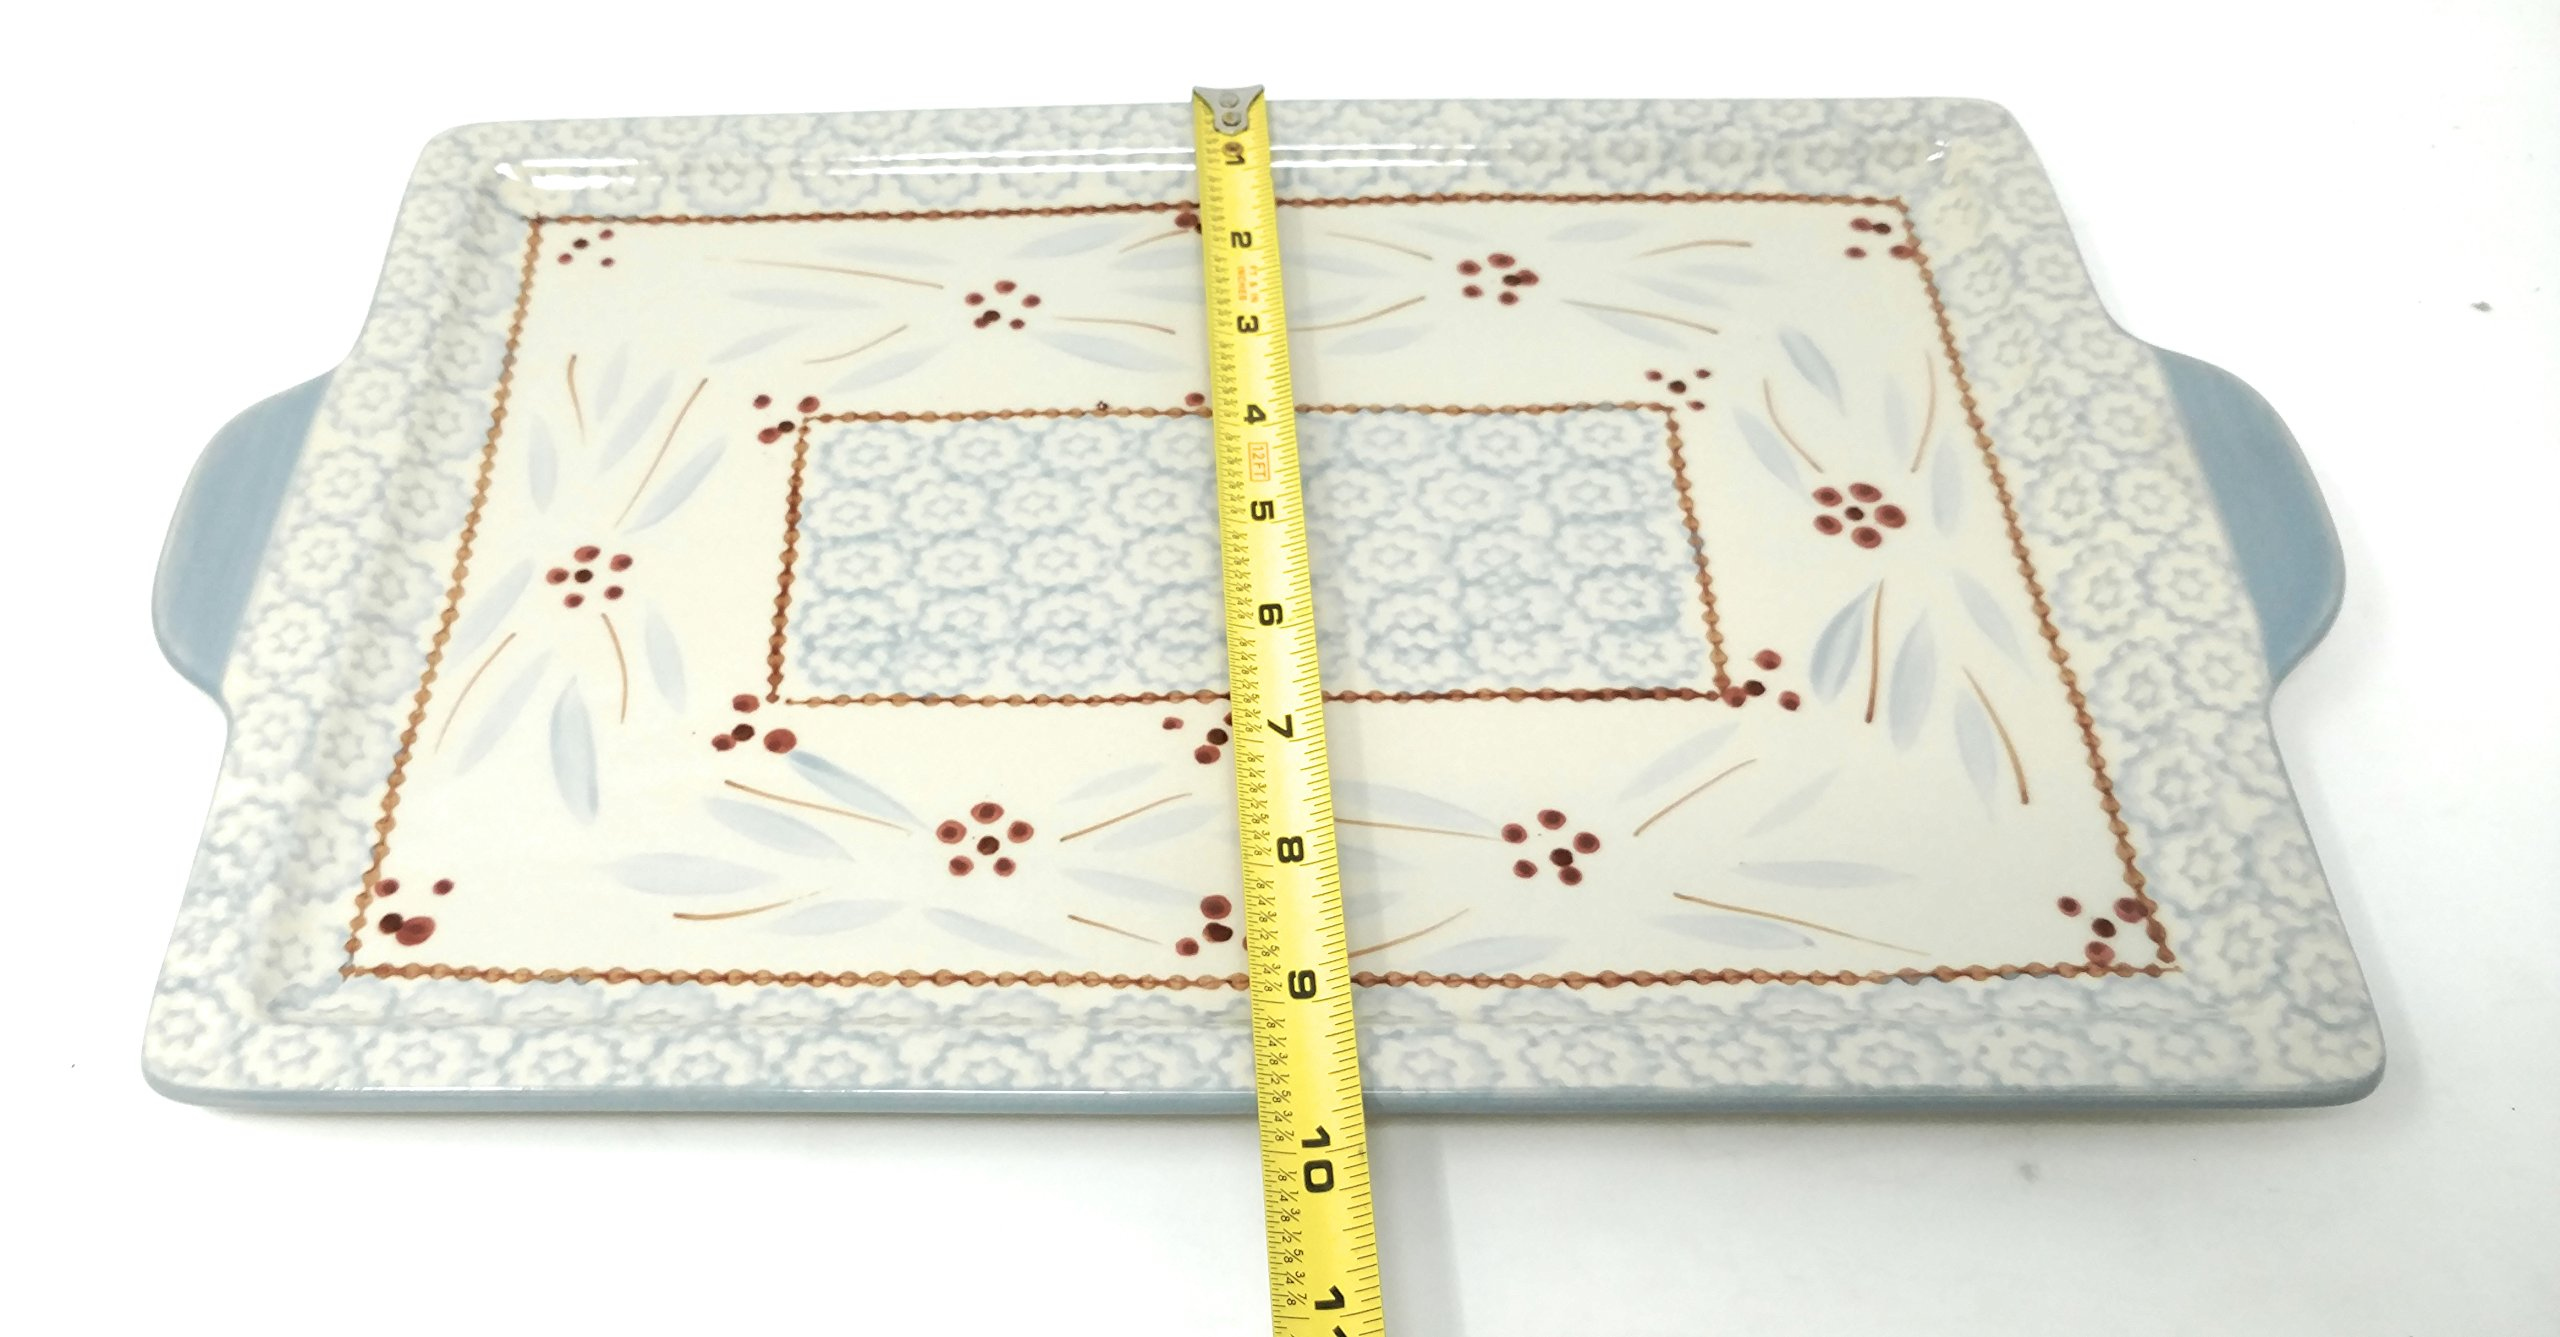 Temp-tations 13''x9'' Cookie Sheet, Platter, Tray or Replacement Lid-It (Old World Fireworkfetti) by Temptations (Image #4)